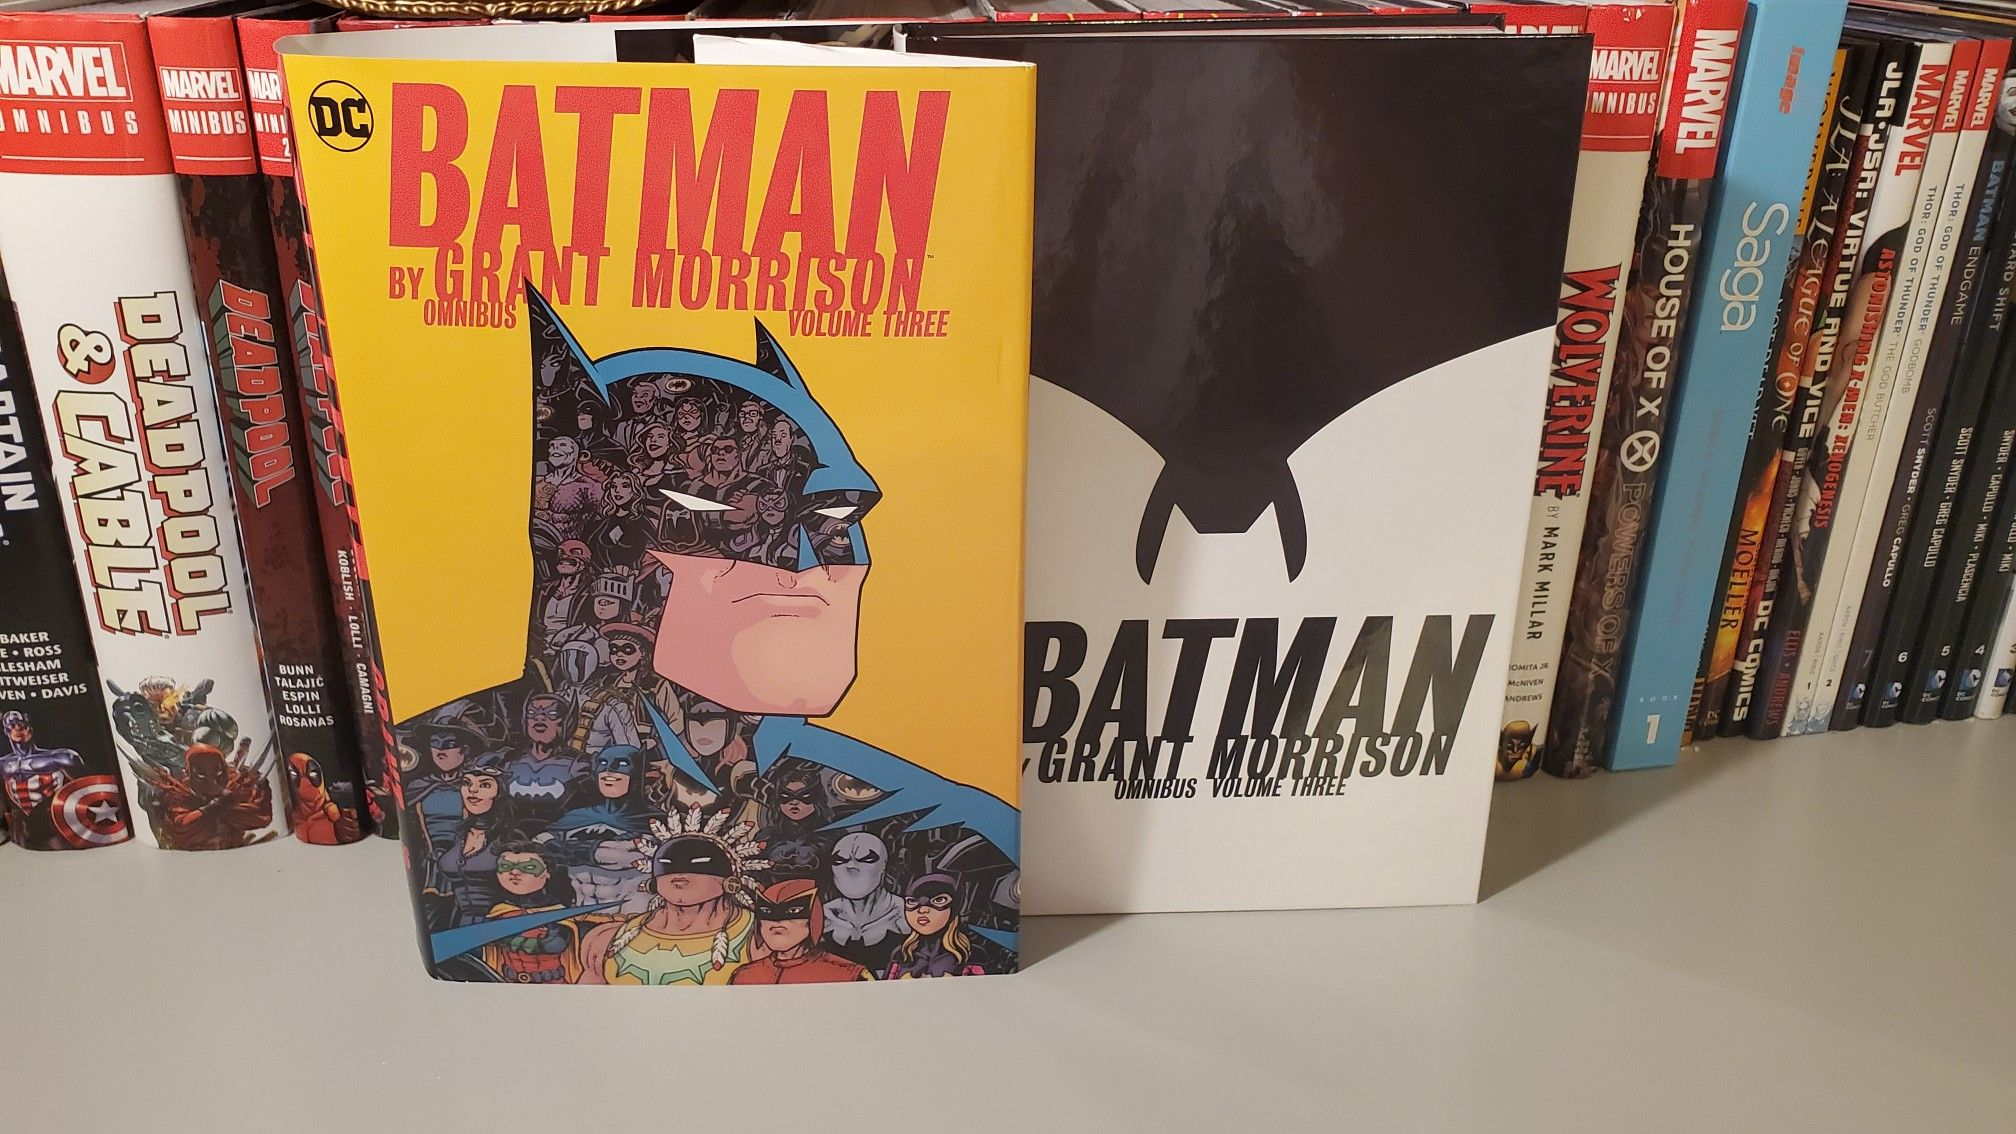 Batman Vol 3 By Grant Morisson Overview Video Https M Youtube Com Watch V Dq38ng Bp0 Batman Bane Bat In 2020 Comic Book Collection Comic Collection Court Of Owls